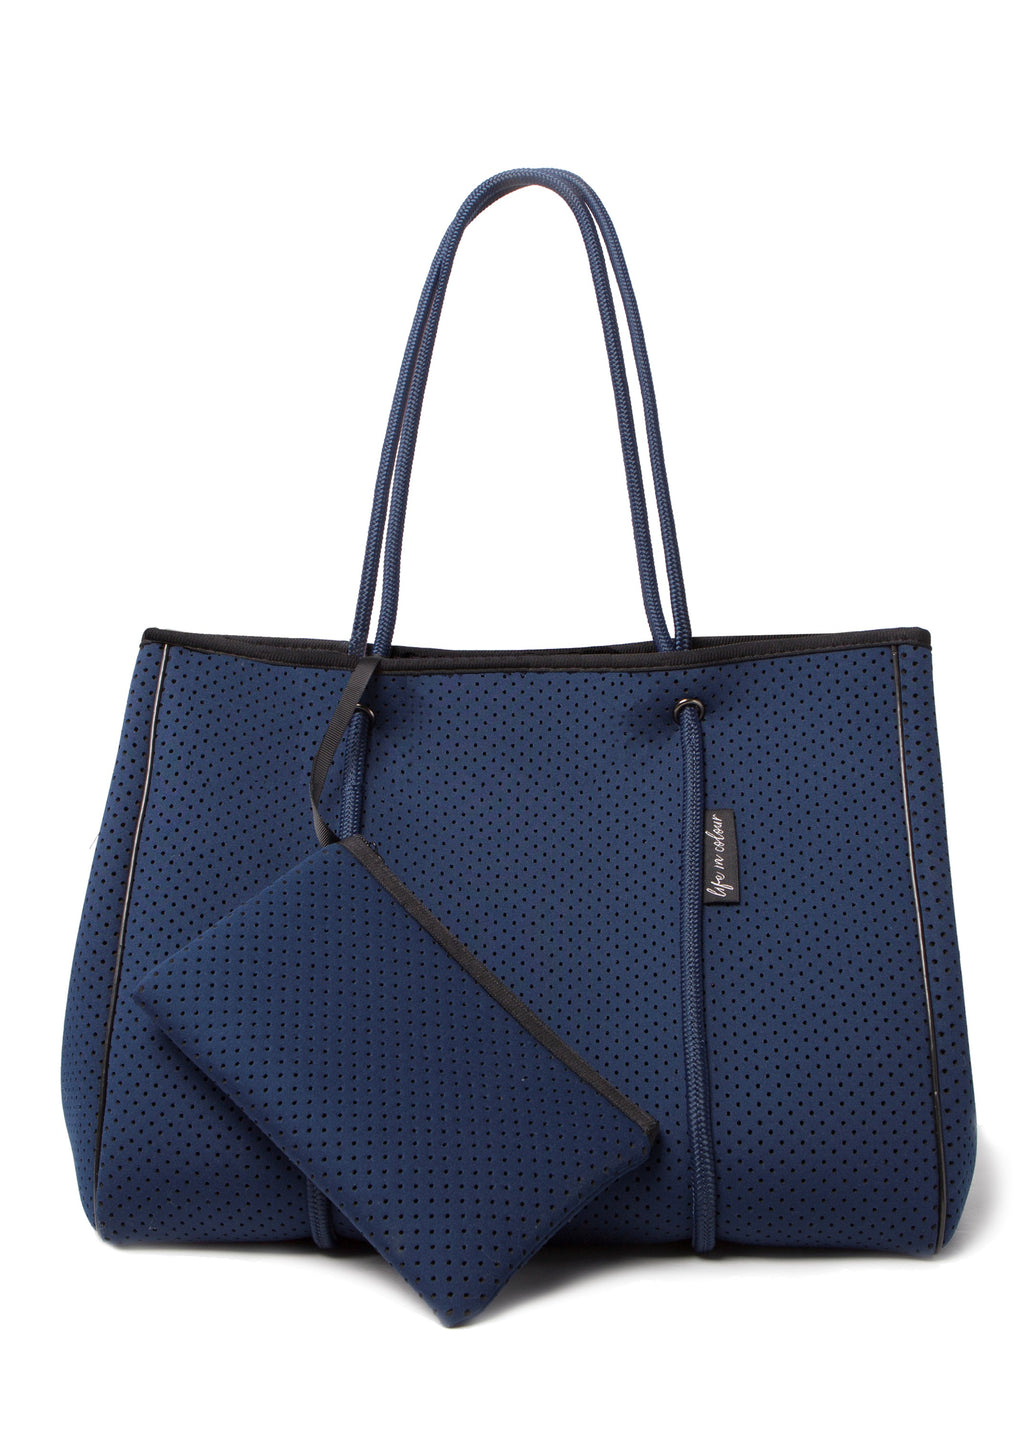 AVA NEOPRENE BAG - NAVY